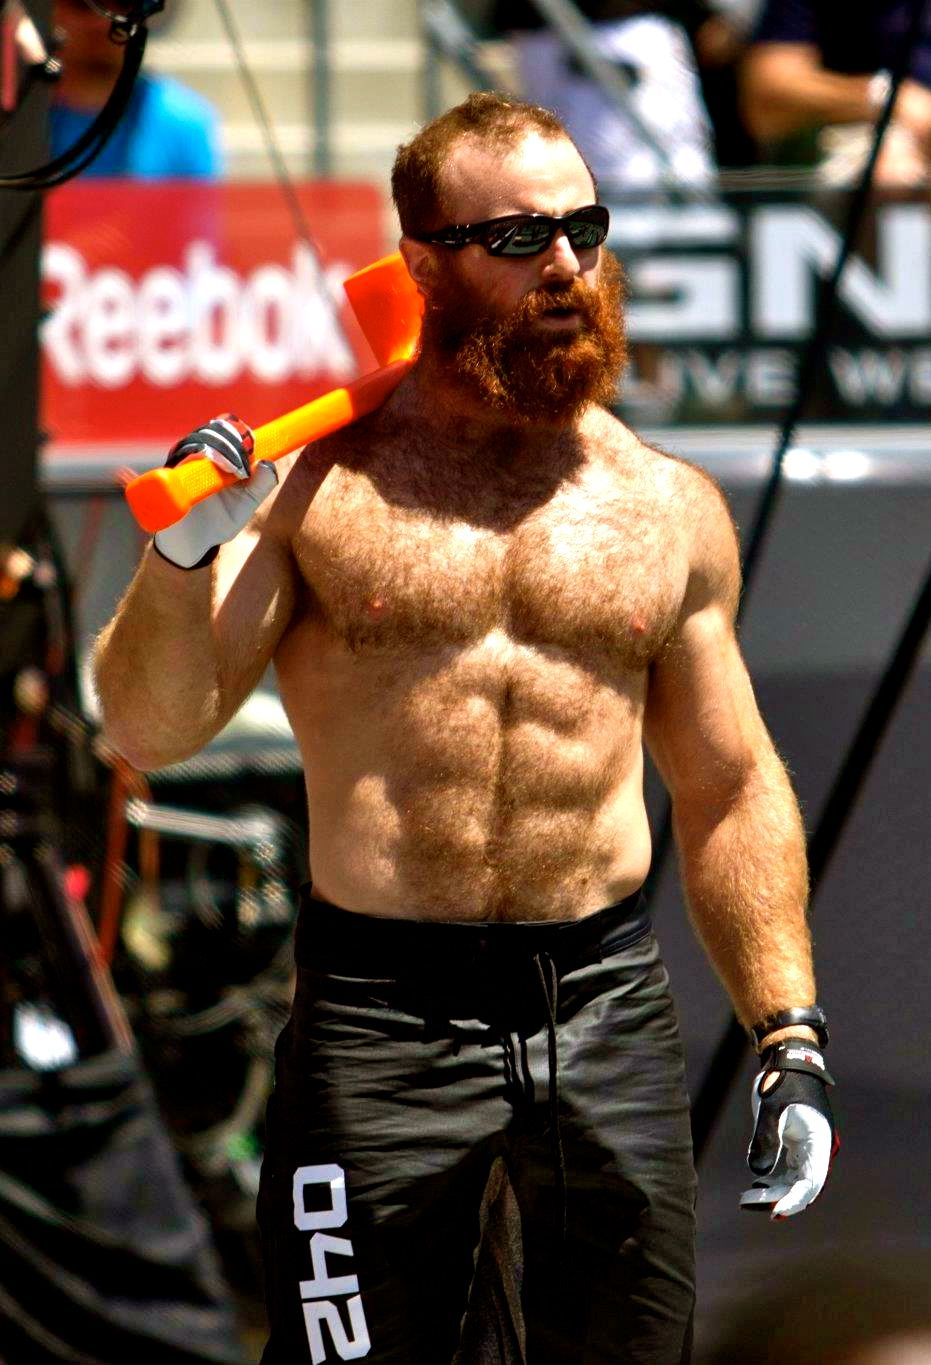 Pin by Breeze Vincinz on Beards and Tattoos | Ginger men